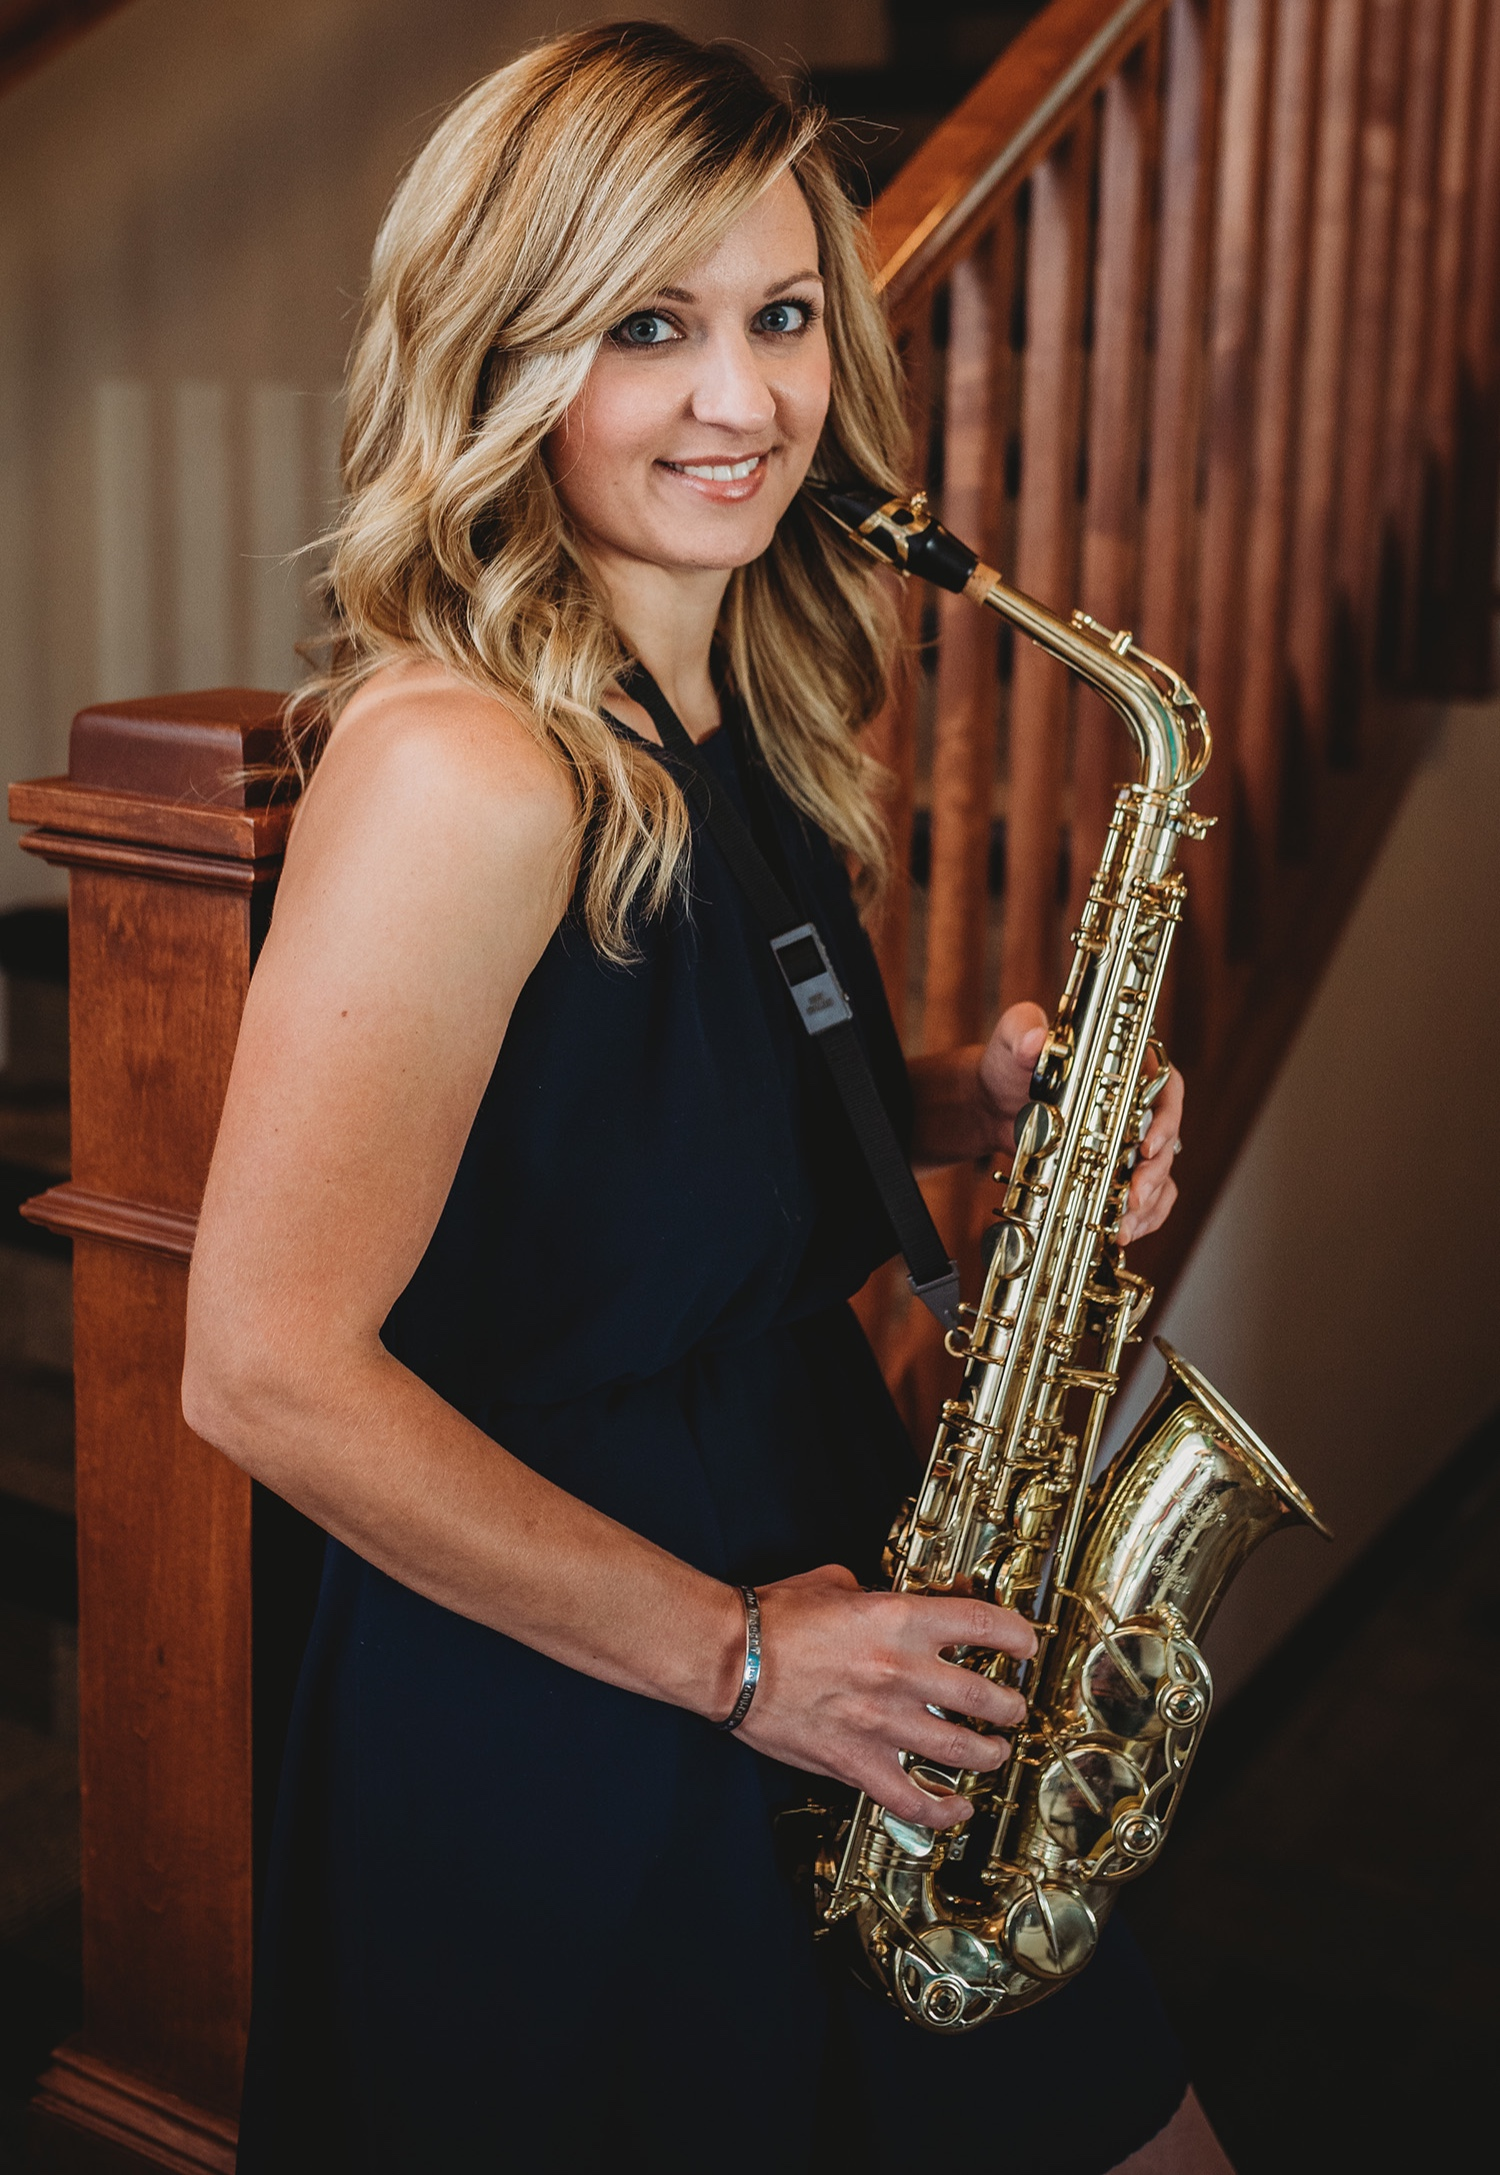 Amy Munsell    Owner & Director   Mrs. Amy Munsell grew up in Cheyenne, Wyoming and the seeds of her love of music were planted early in her youth. She took up the saxophone when she was ten years old and played throughout her public school years. In 2004 after leading the Cheyenne East High School Marching Band as drum major, she left for the University of Wyoming where she earned her Bachelor of Arts in Music Education. During her collegiate career she played her saxophone with many artists and travelled to play in regional quartet and national solo competitions. The highlight of Amy's performances at UW was a victory in the Dorothy Jacoby Concerto Competition as the first saxophonist and the first Music Education major to win.  While teaching in Natrona County School District #1, Amy taught K-6 general music and beginning band at 21 different schools and assisted the high school marching bands. Mrs. Munsell resigned in 2013 to open VIBES Fine & Performing Arts, LLC.  VIBES Fine & Performing Arts has grown to hundreds of students in various lessons and classes since opening. VIBES has served thousands of preschoolers through outreach programs to help serve the community and support children's brain development through music. Additionally, VIBES assists hundreds of children through general music and instrumental programs in Converse County School District #2 and Natrona County School District #1.  Amy leads an Award Winning Maestro Top Program (Top 5% Best Kindermusik Programs Worldwide) and assists in directing over twenty instructors ranging in diverse styles of music.  Through VIBES, Amy is involved in many charitable events and activities that contributes to the community each year. Including working with children of varying disabilities, providing lectures for parenting, preschool, and pediatric centers, volunteering in various educational community events, and advocating for music education. Amy also partners with local nonprofits in support of their programs; supports local benefits with student and instructor performances, and brings in several professional guest performances free of charge to the VIBES members and the public.  Amy is adamant about giving her students many opportunities to perform in the public including recitals, master classes, competing in various competitions at the state and national level, and community performances. Amy has planned large-scale events and collaborations with world class professional musicians to motivate and inspire all in the community. Guest artists have included: The Blue Man Group, Denver Broncos Stampede Drumline, Denver Nuggets Skyline Drumline, University of Wyoming Music Faculty, Geoffrey Castle, Brent Daniels, and more!  In her free time, Amy enjoys spending time with her family, snow skiing, and spending time outdoors.